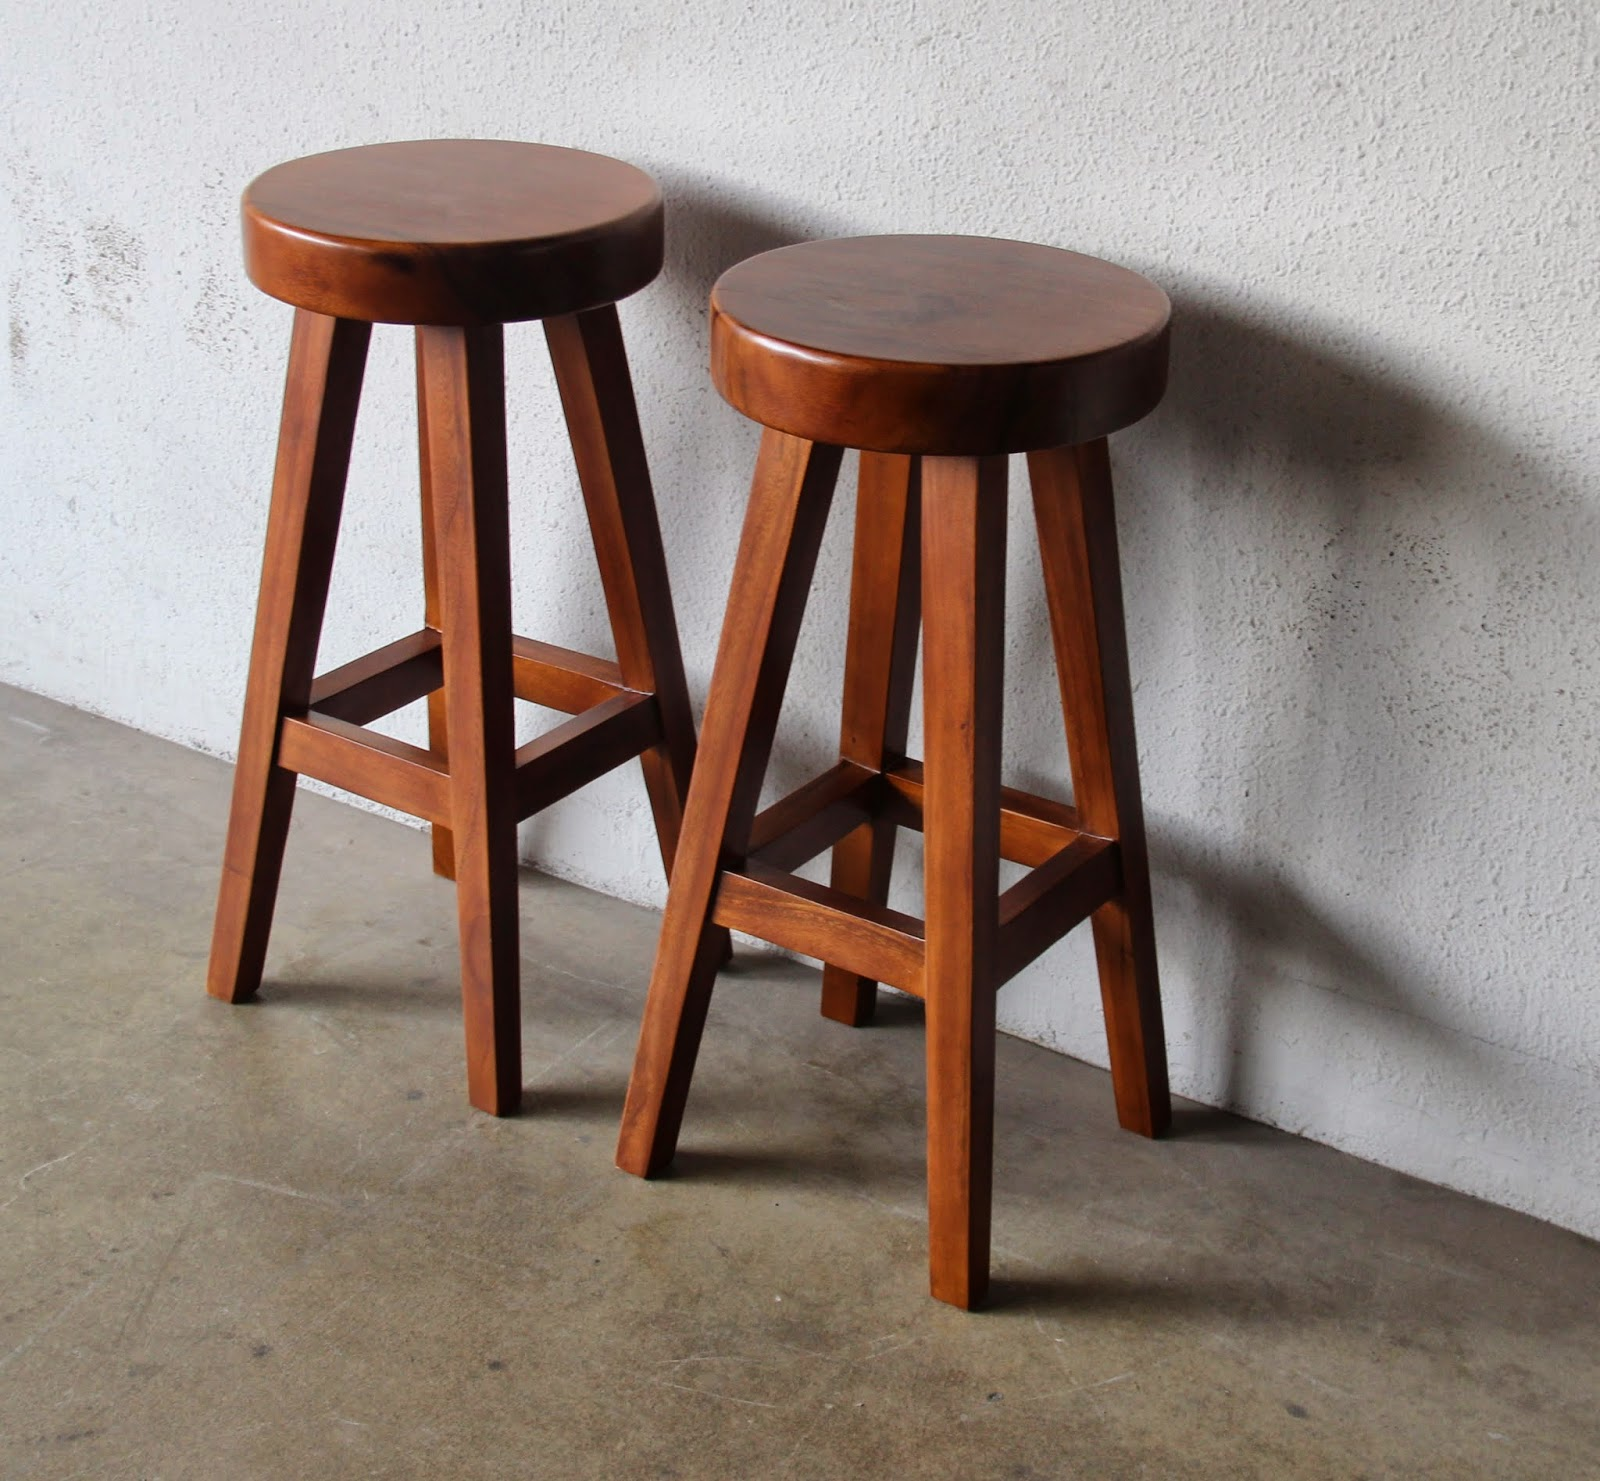 SECOND CHARM FURNITURE   STOOLS, BARSTOOLS, BAR CHAIRS AND BENCHES | Second  Charm